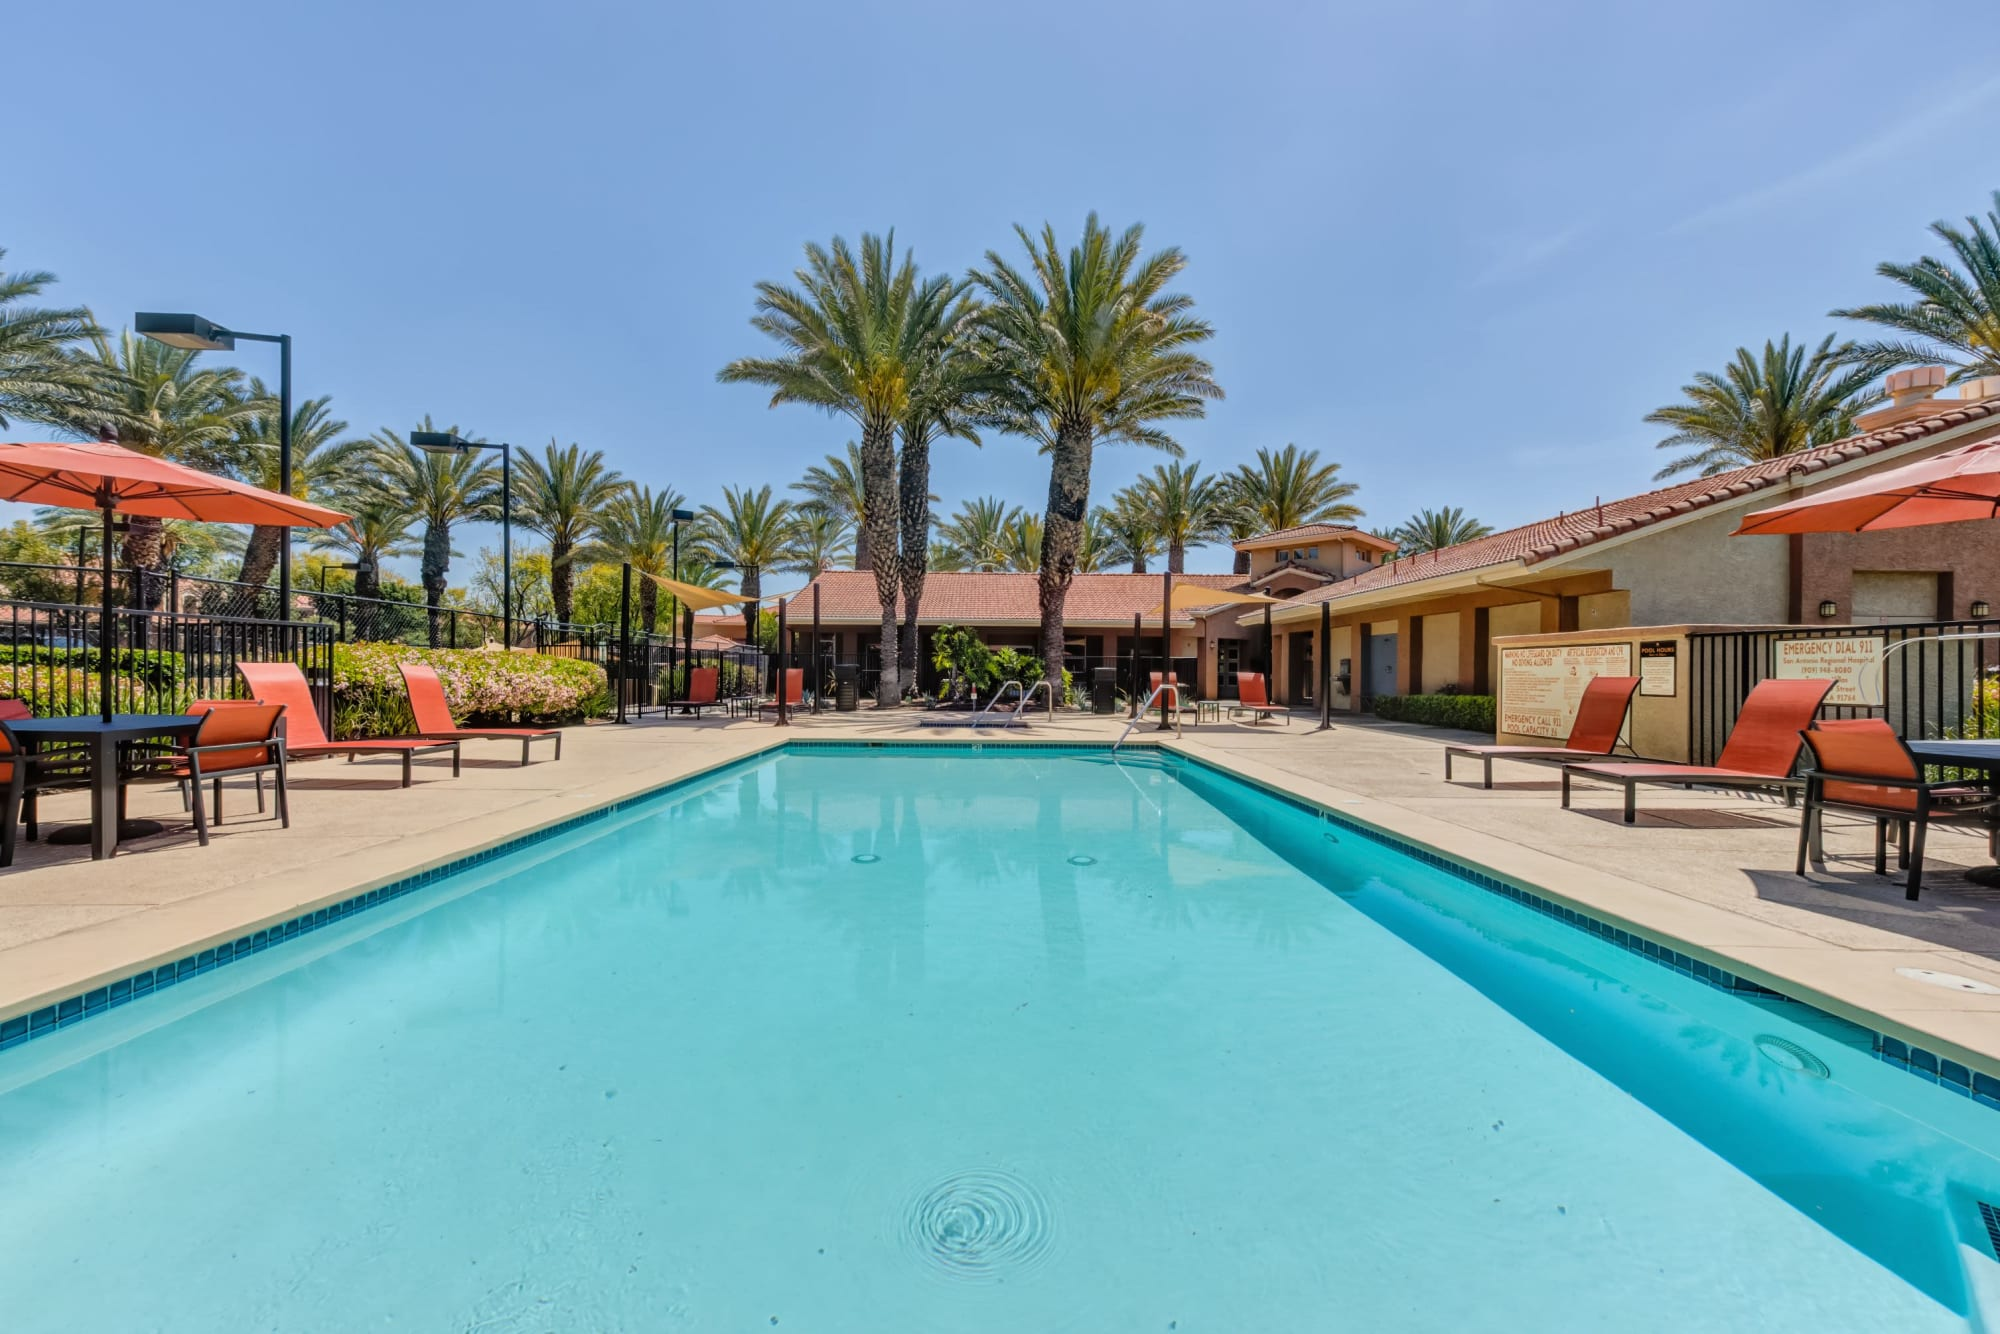 Pool view with umbrellas, lounge chairs and spa At Tuscany Village Apartments